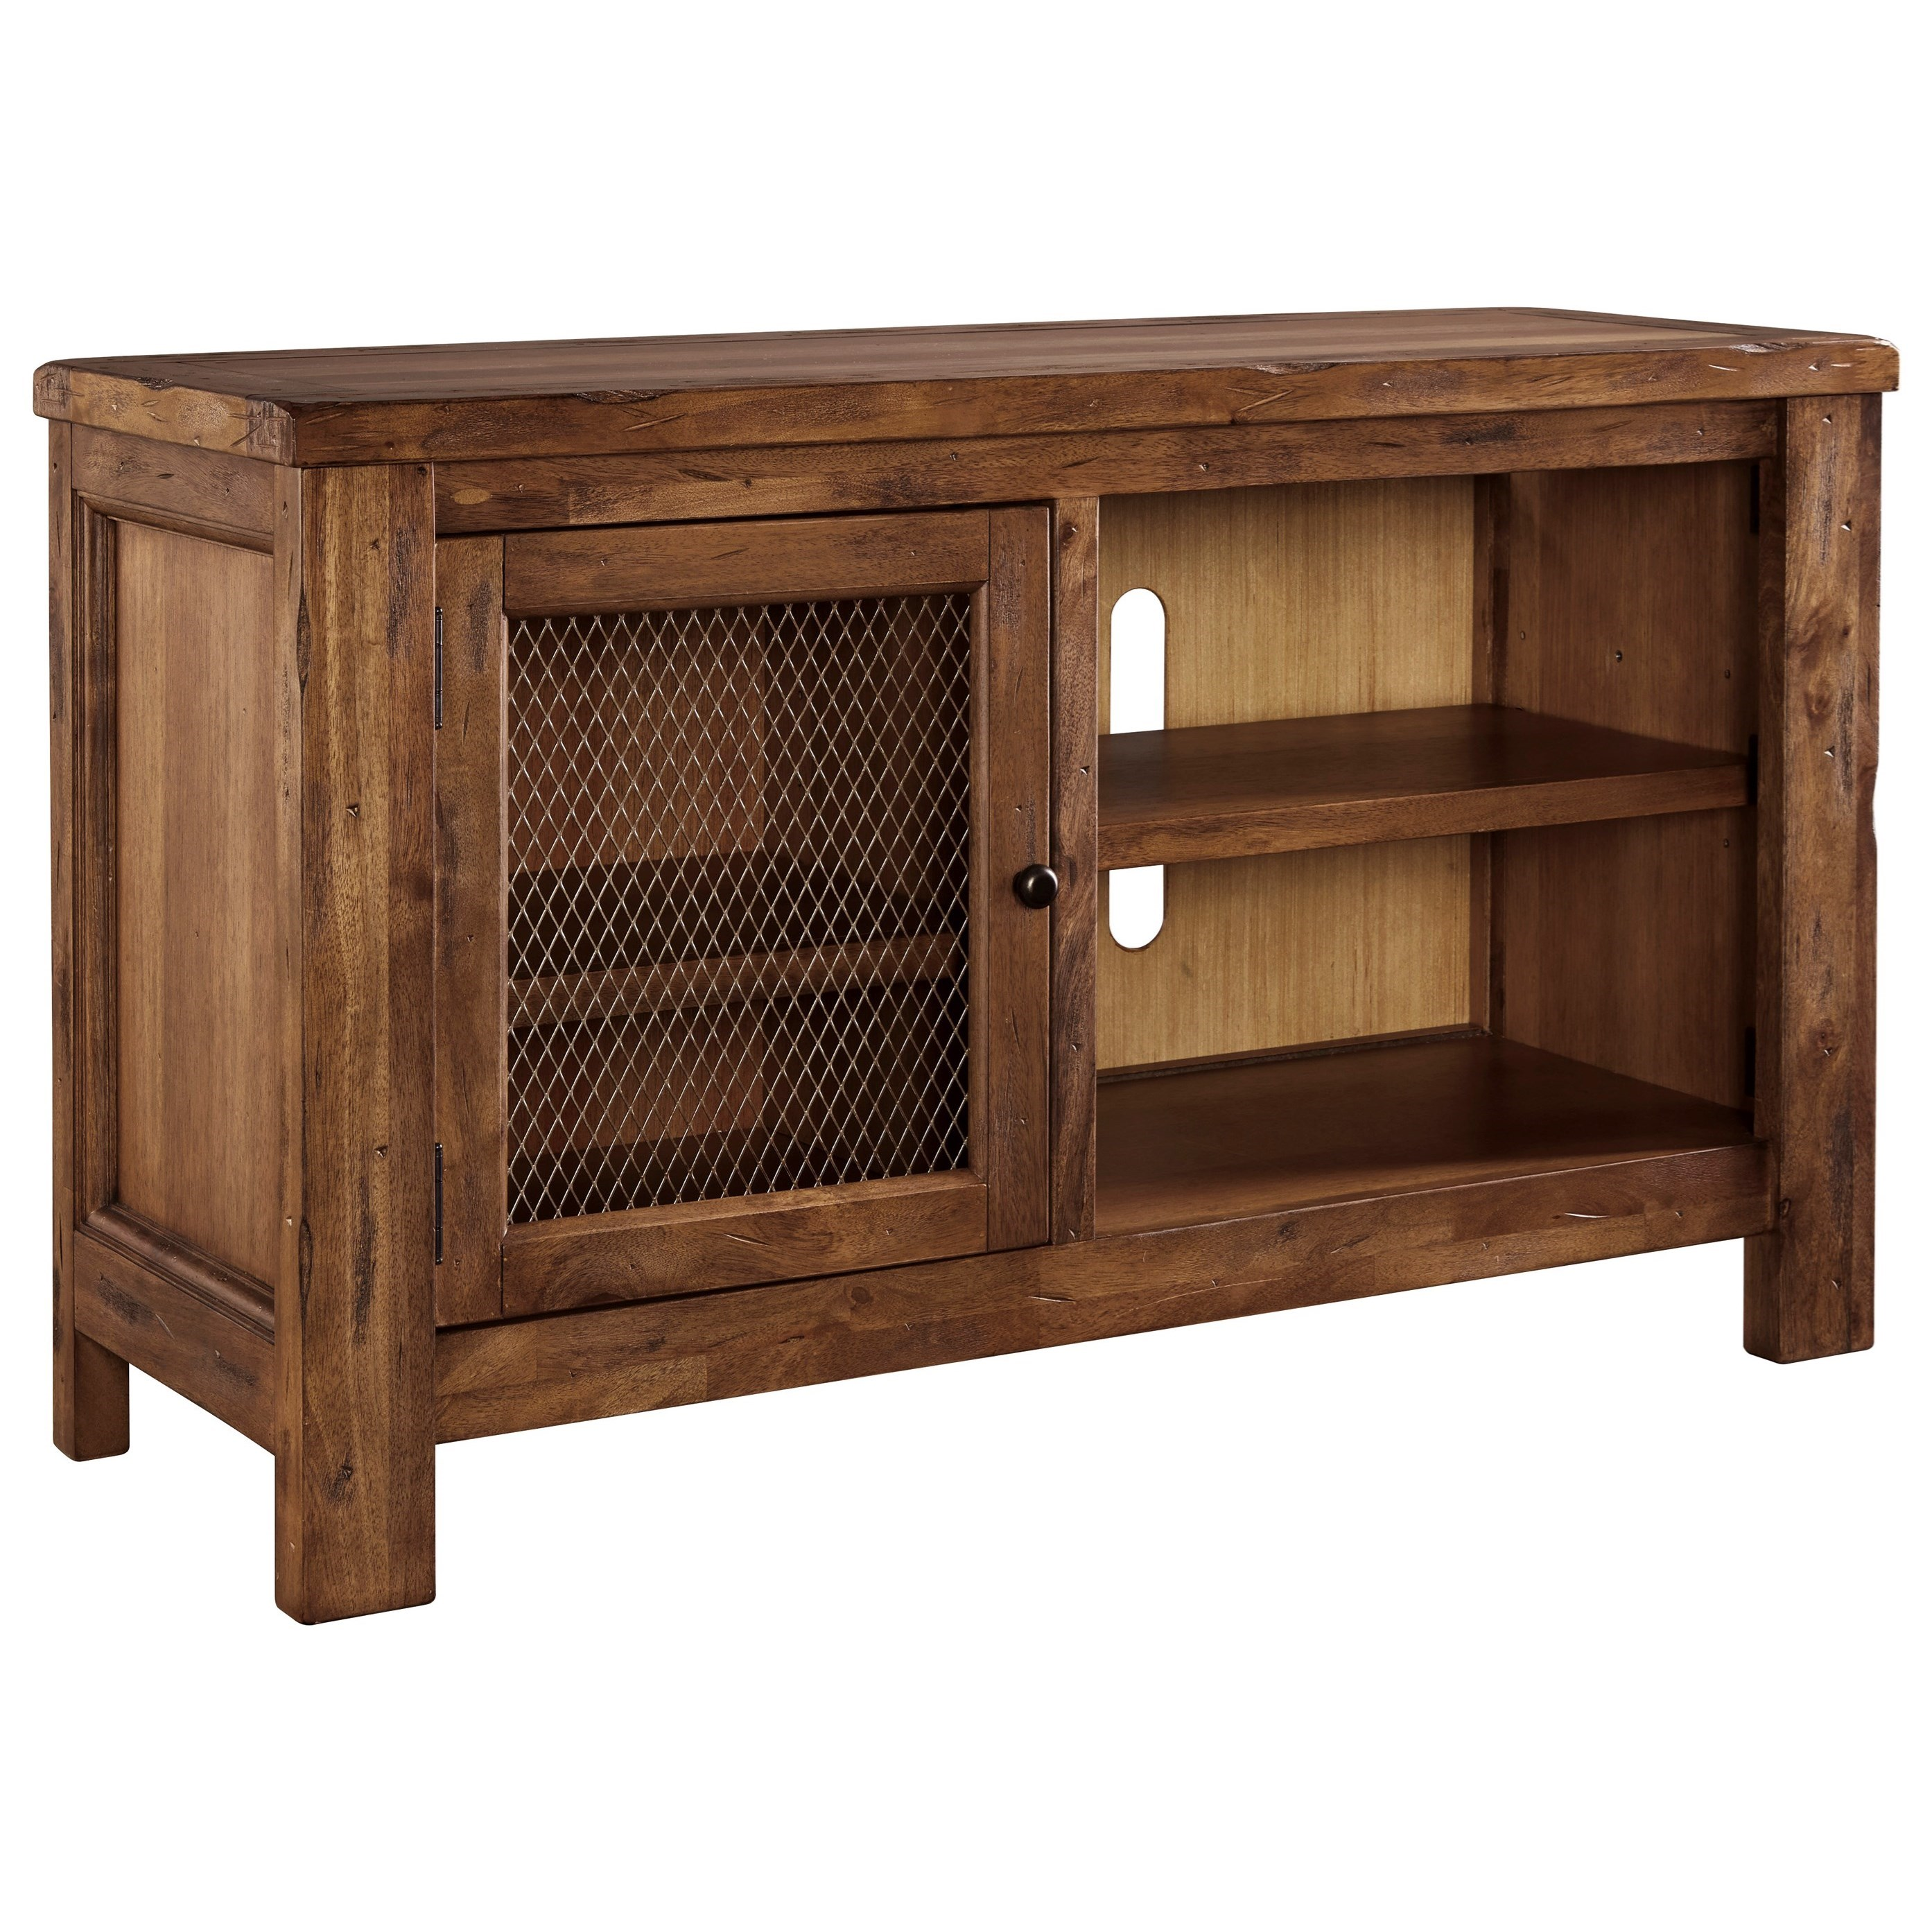 Signature Design by Ashley Tamonie TV Stand - Item Number: W830-18